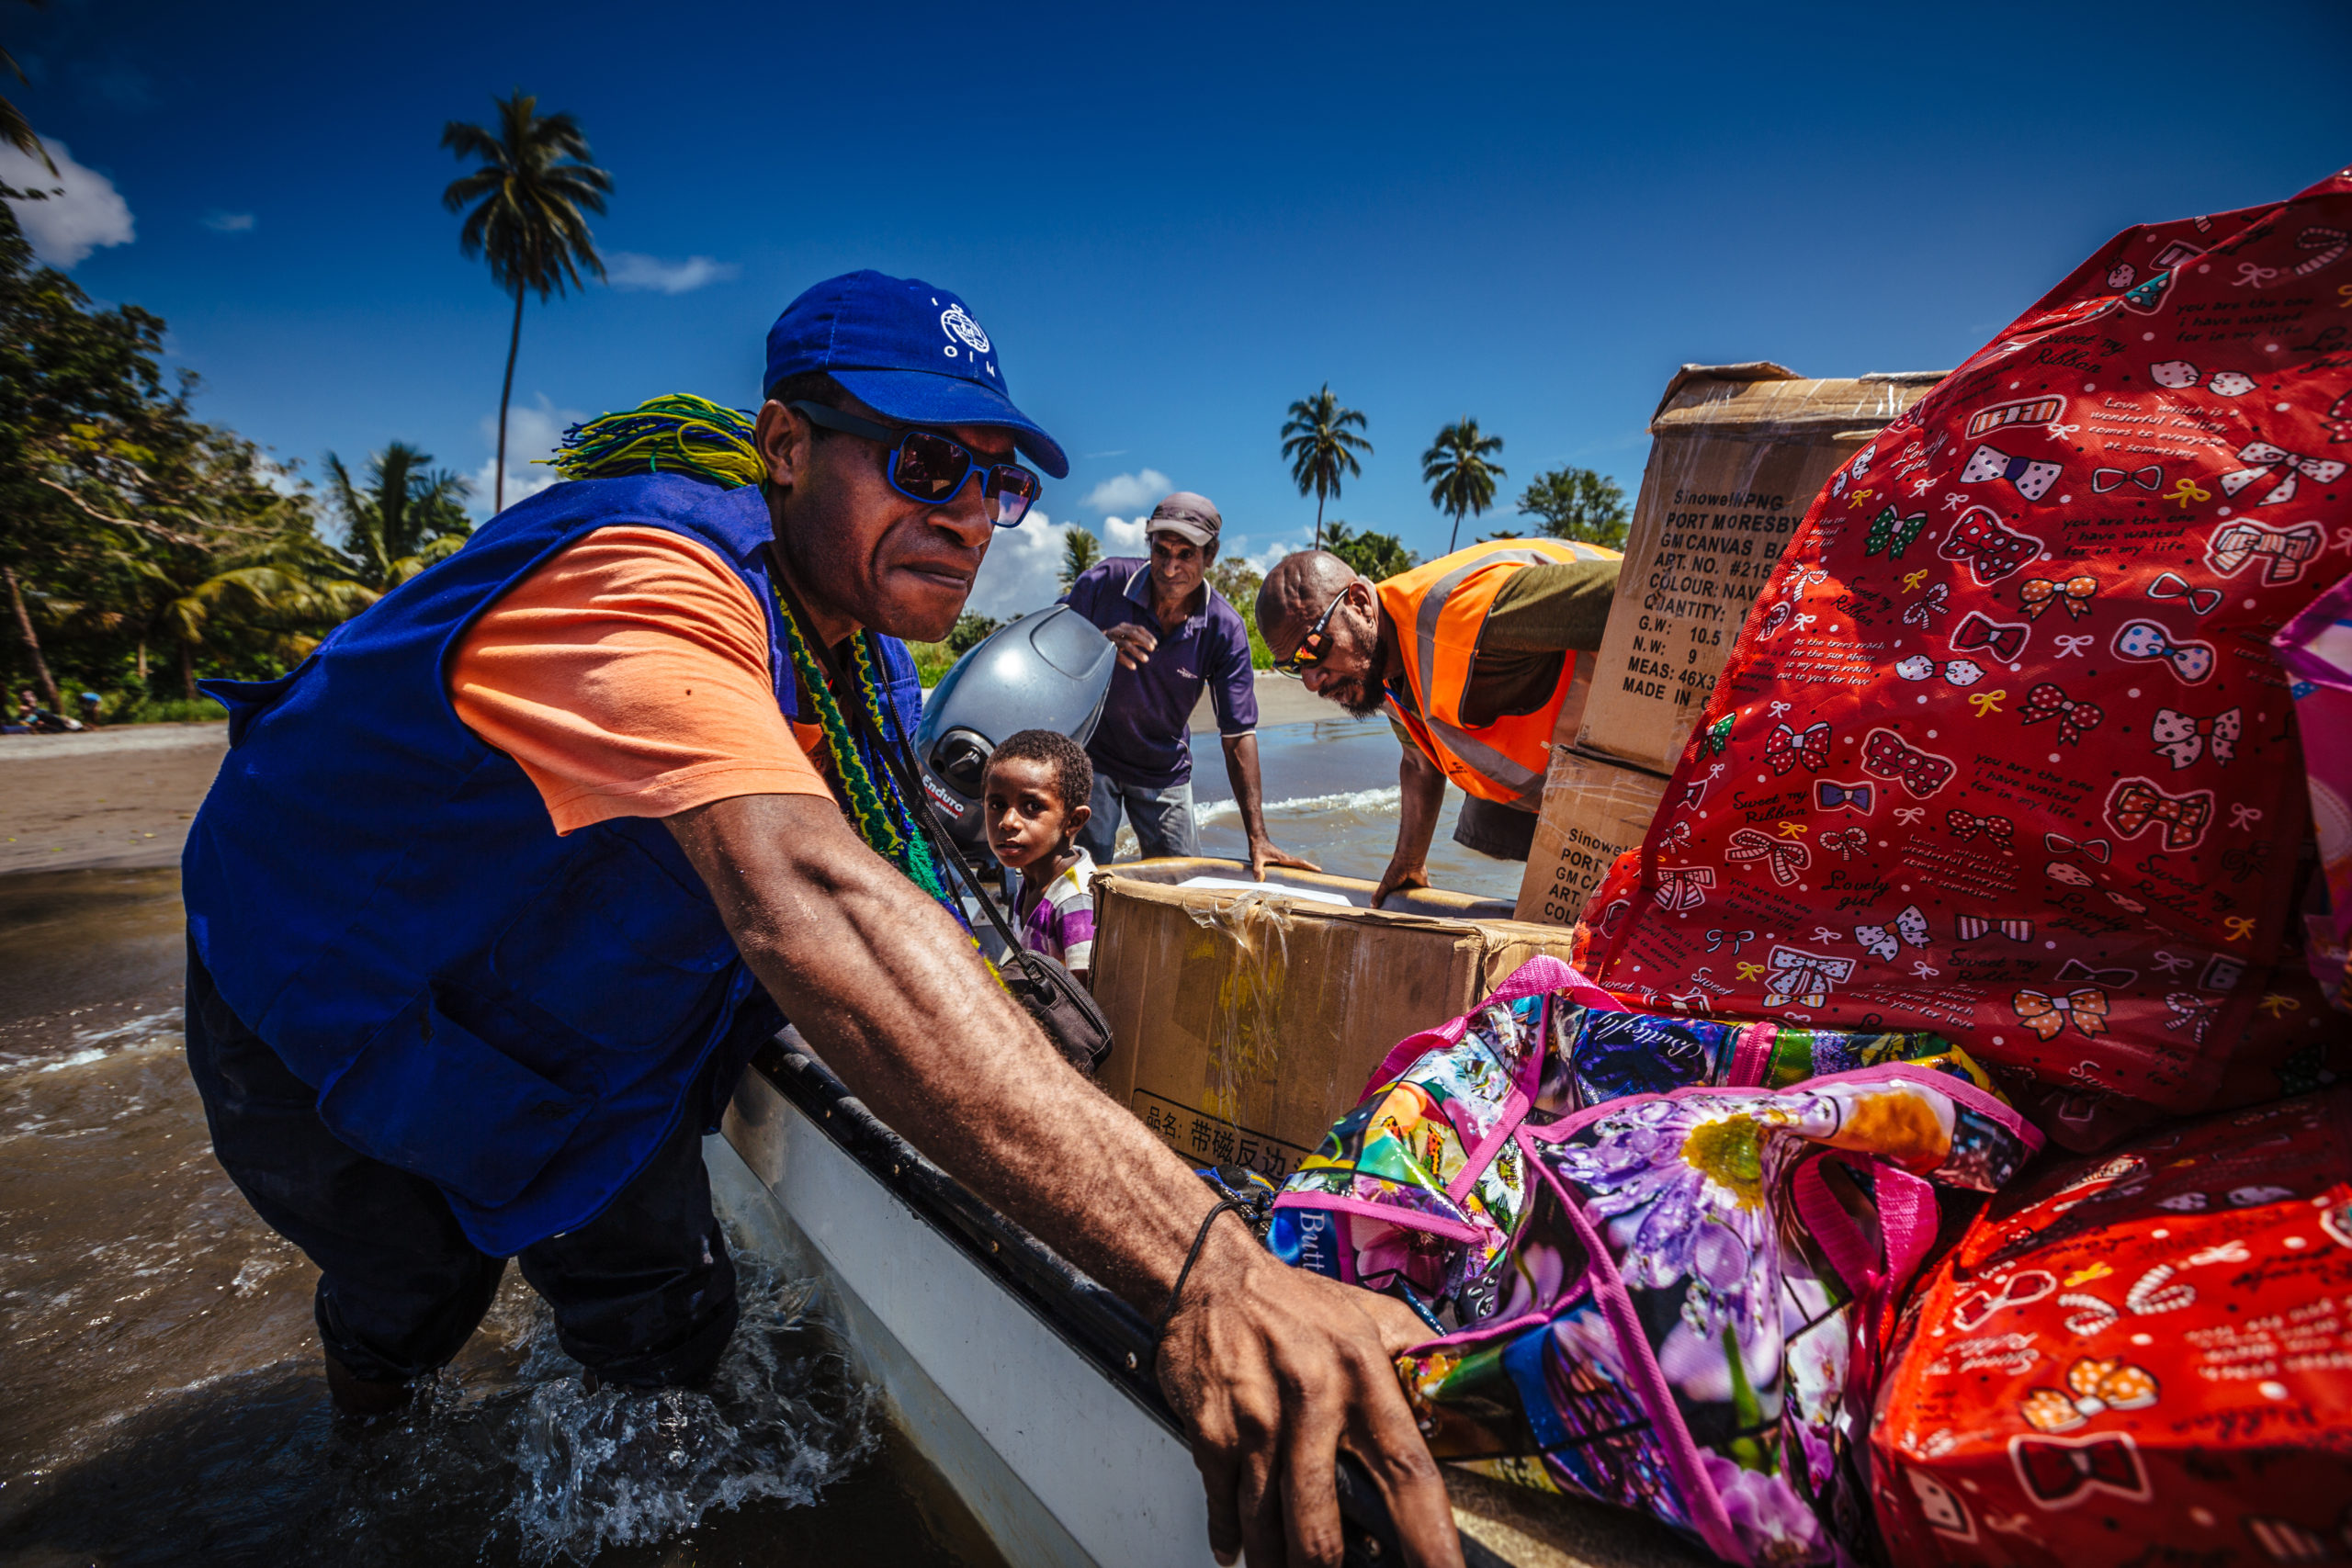 IOM staff pushing a boat full of emergency NFI's in order to reach flood affected villages located in jungle areas of Popondetta, Papua New Guinea. ©Muse Mohammed